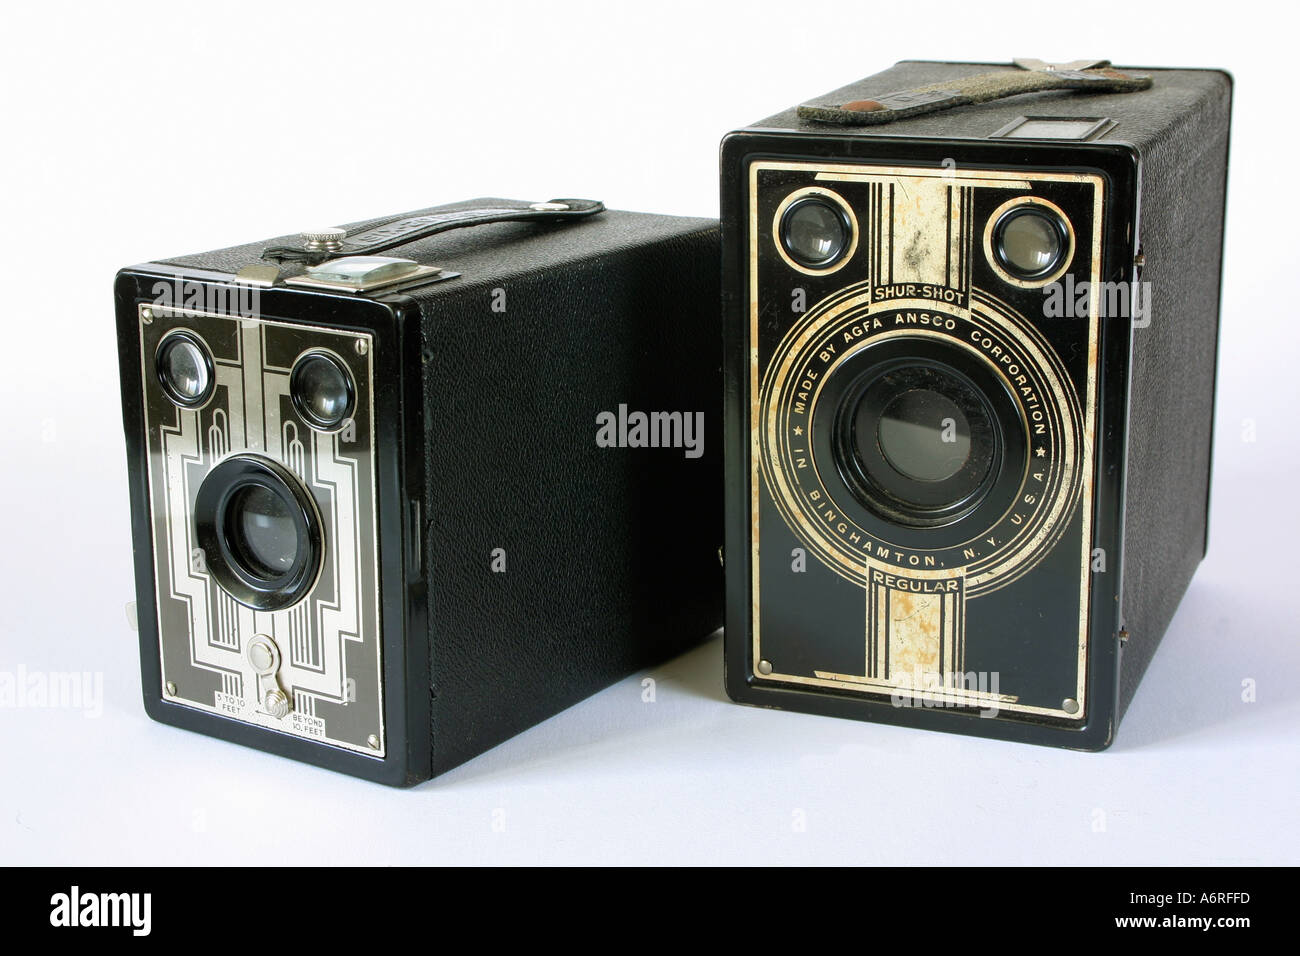 Two vintage antique box brownie cameras against white studio background - Stock Image